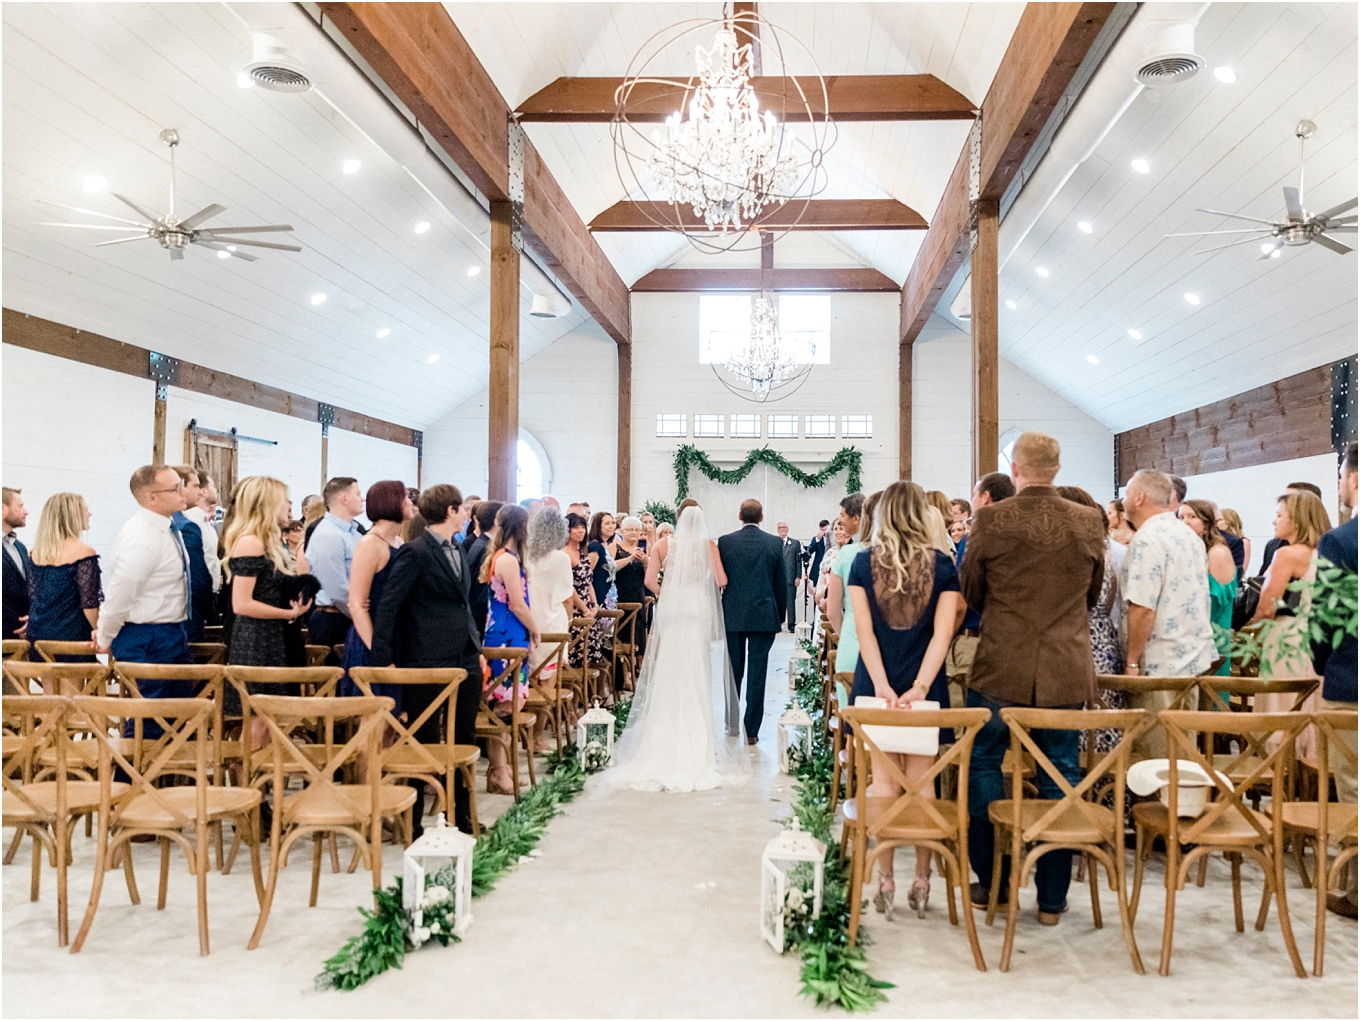 Lisa Silva Photography- Ponte Vedra Beach, St. Augustine and Jacksonville, Florida Fine Art Film Wedding and Boudoir Photography- Elegant Blush and Navy Wedding at Chandler Oaks Barn in St. Augustine, Florida_0062.jpg